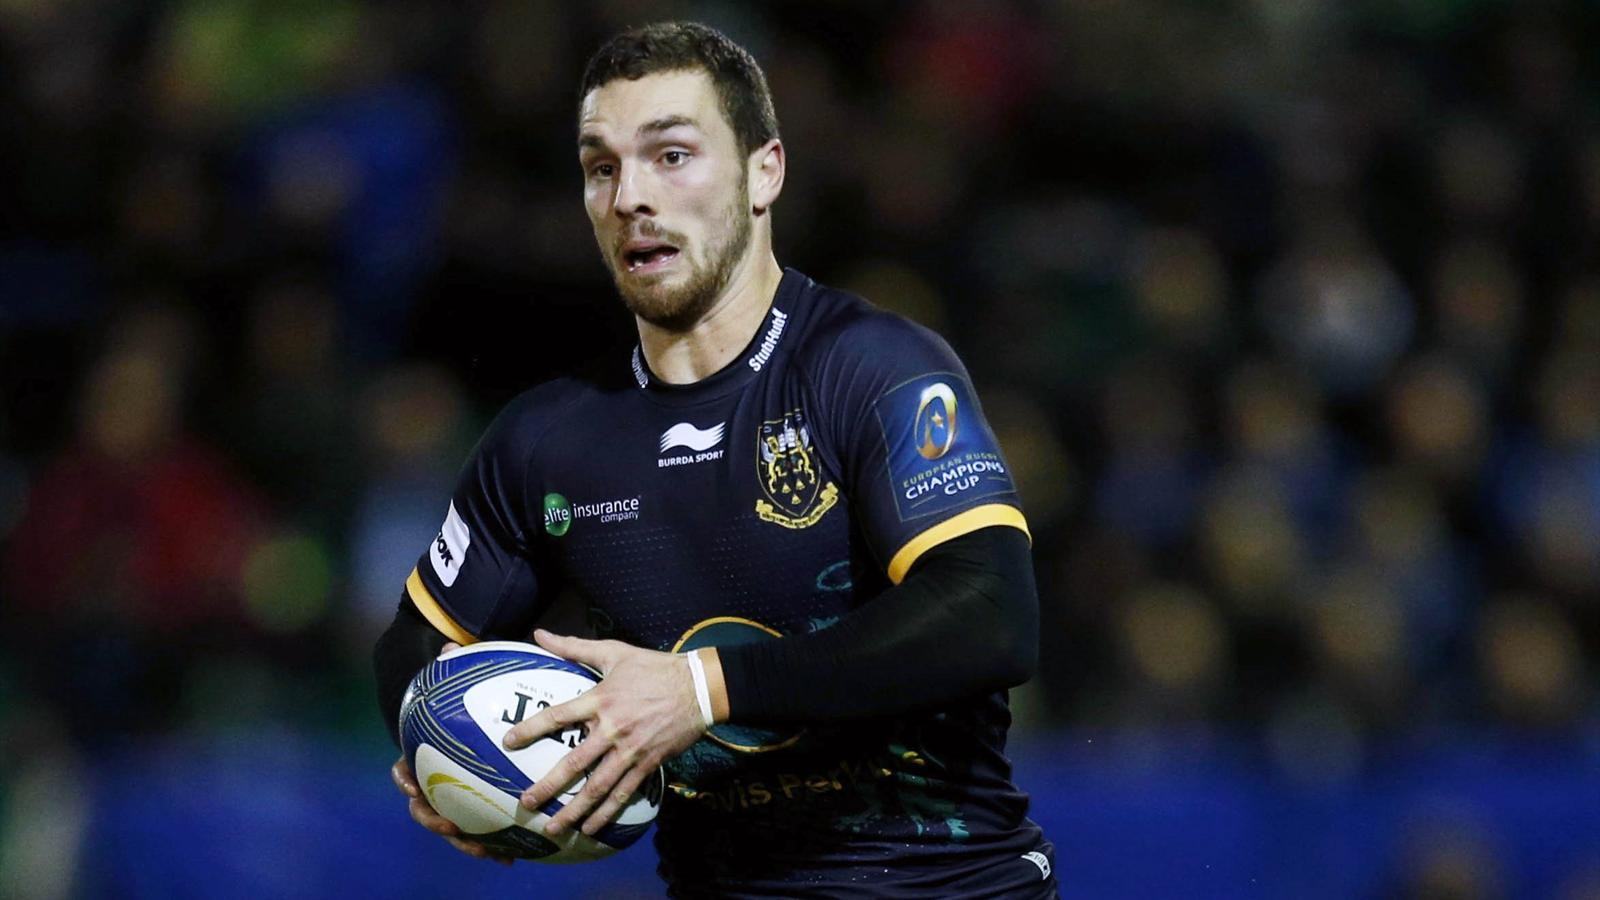 George North (Northampton) - novembre 2015